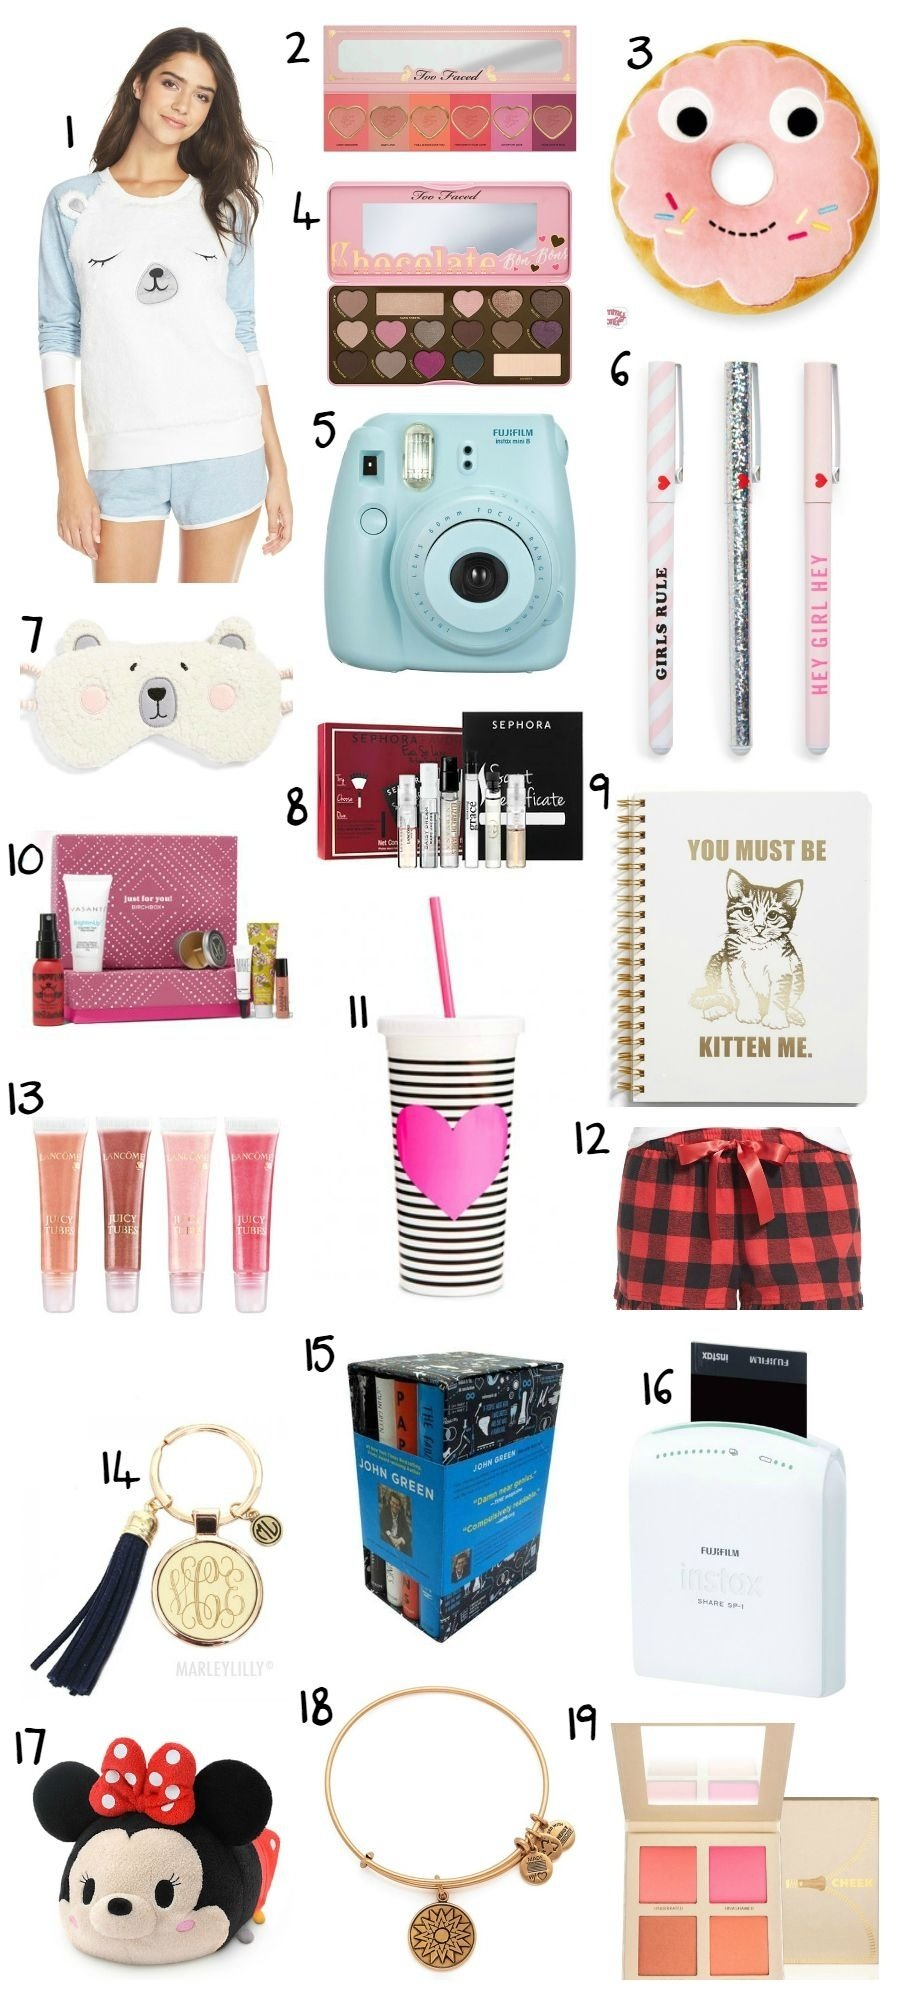 10 Awesome Good Ideas For Christmas Gifts best christmas gift ideas for teens ashley brooke christmas gift 24